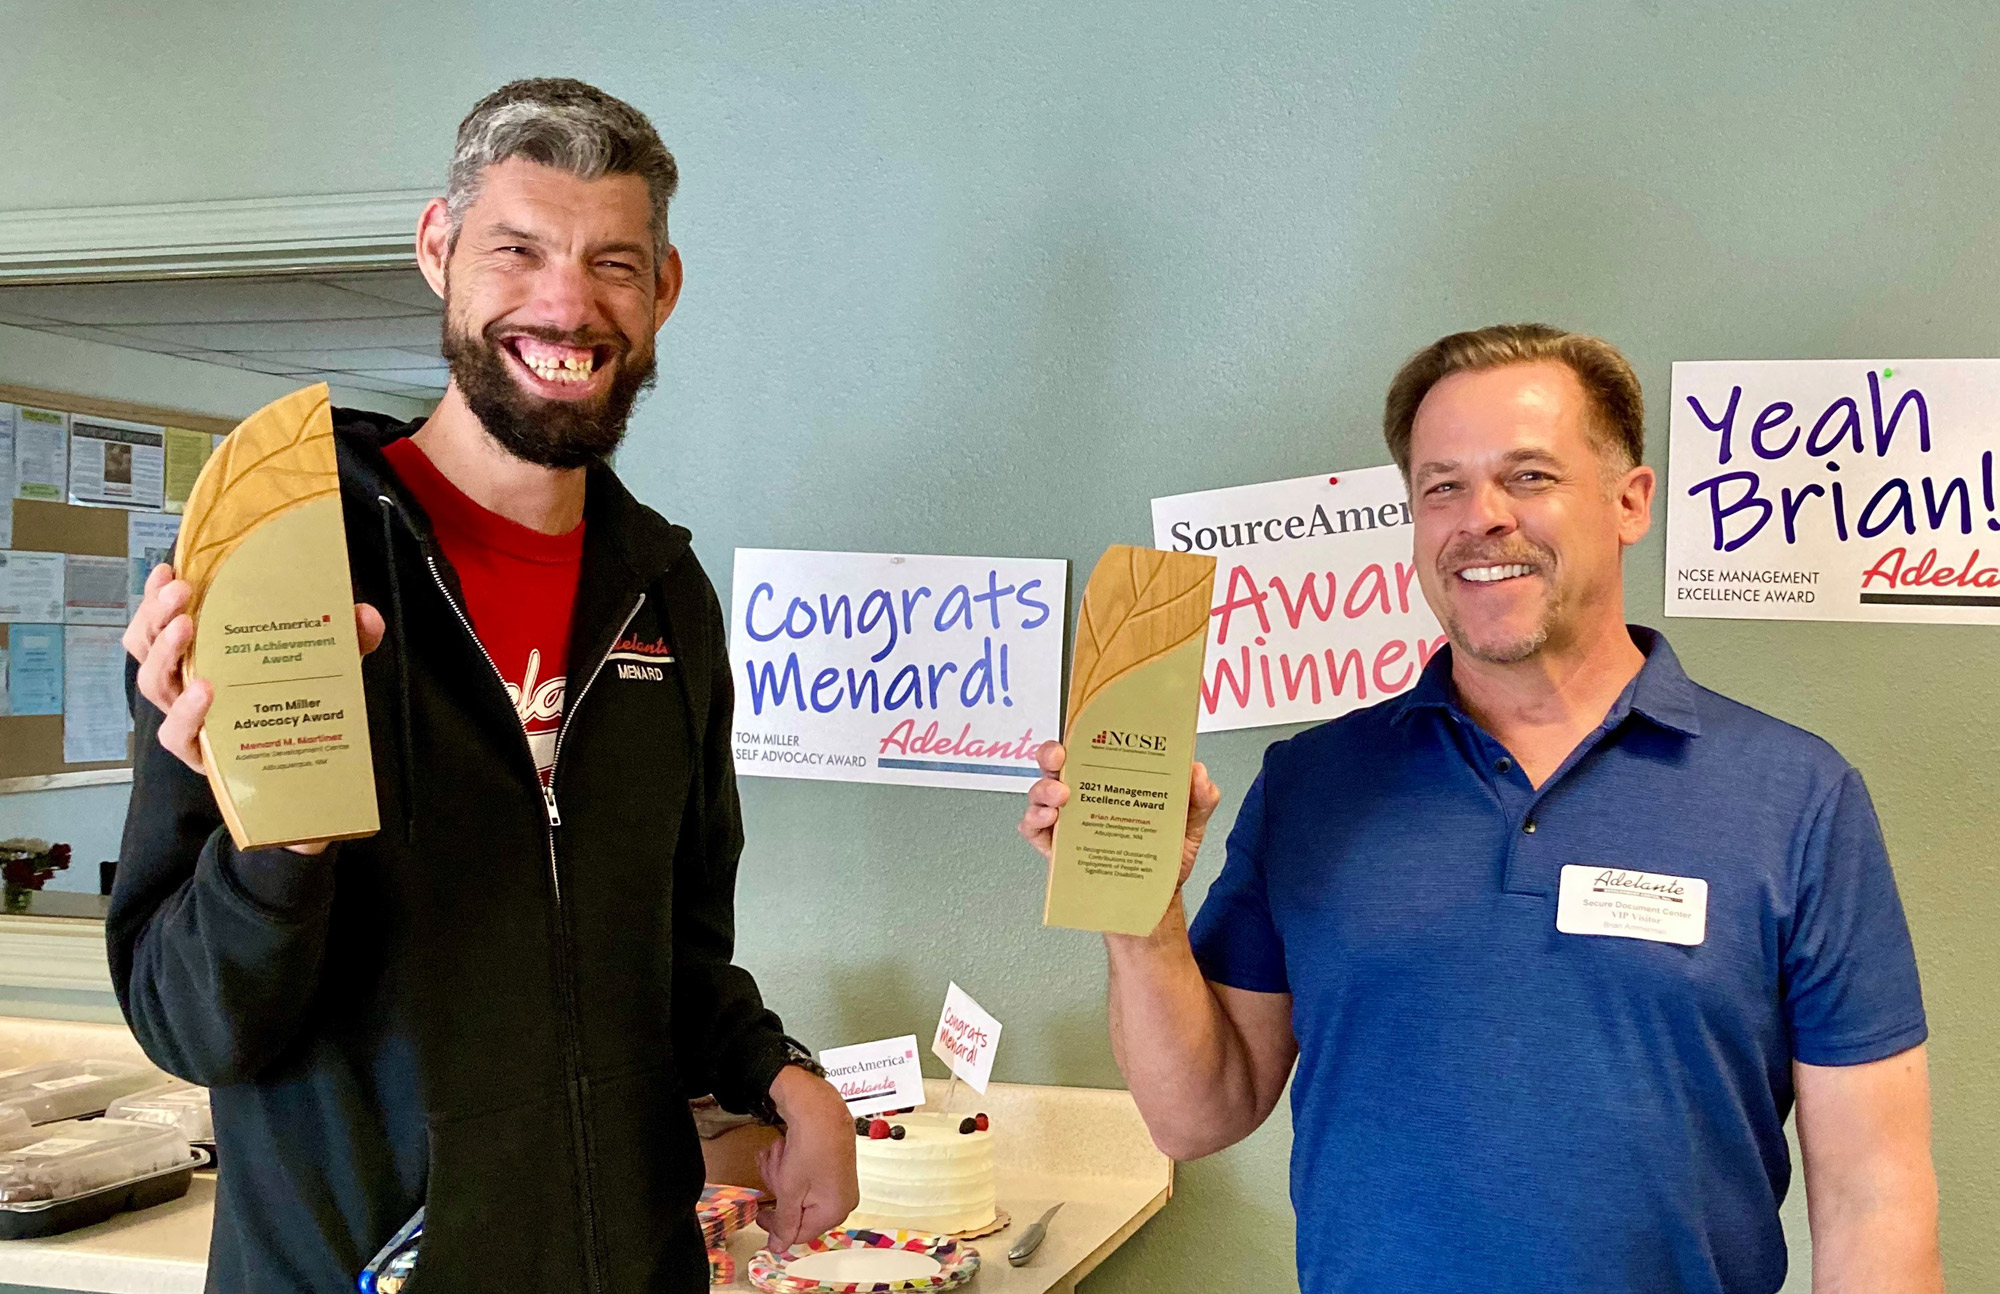 Menard Martinez and Brian Ammerman received awards for advocacy and leadership from SourceAmerica.